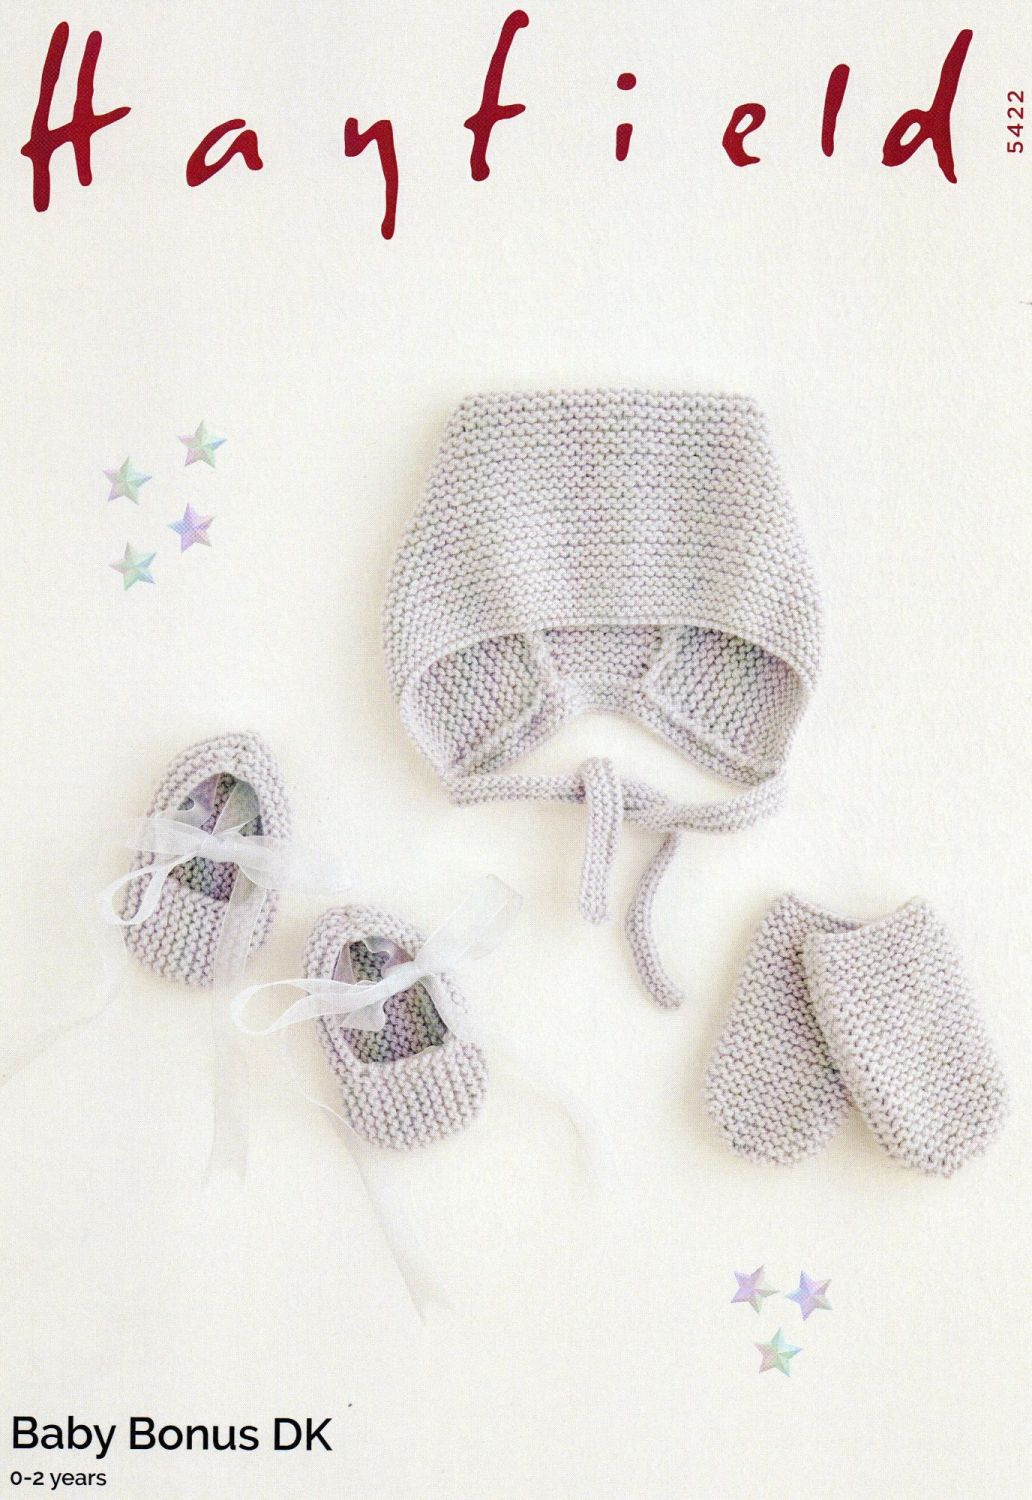 54522 - HAT, SHOES AND MITTENS BY HAYFIELD IN DOUBLE KNIT